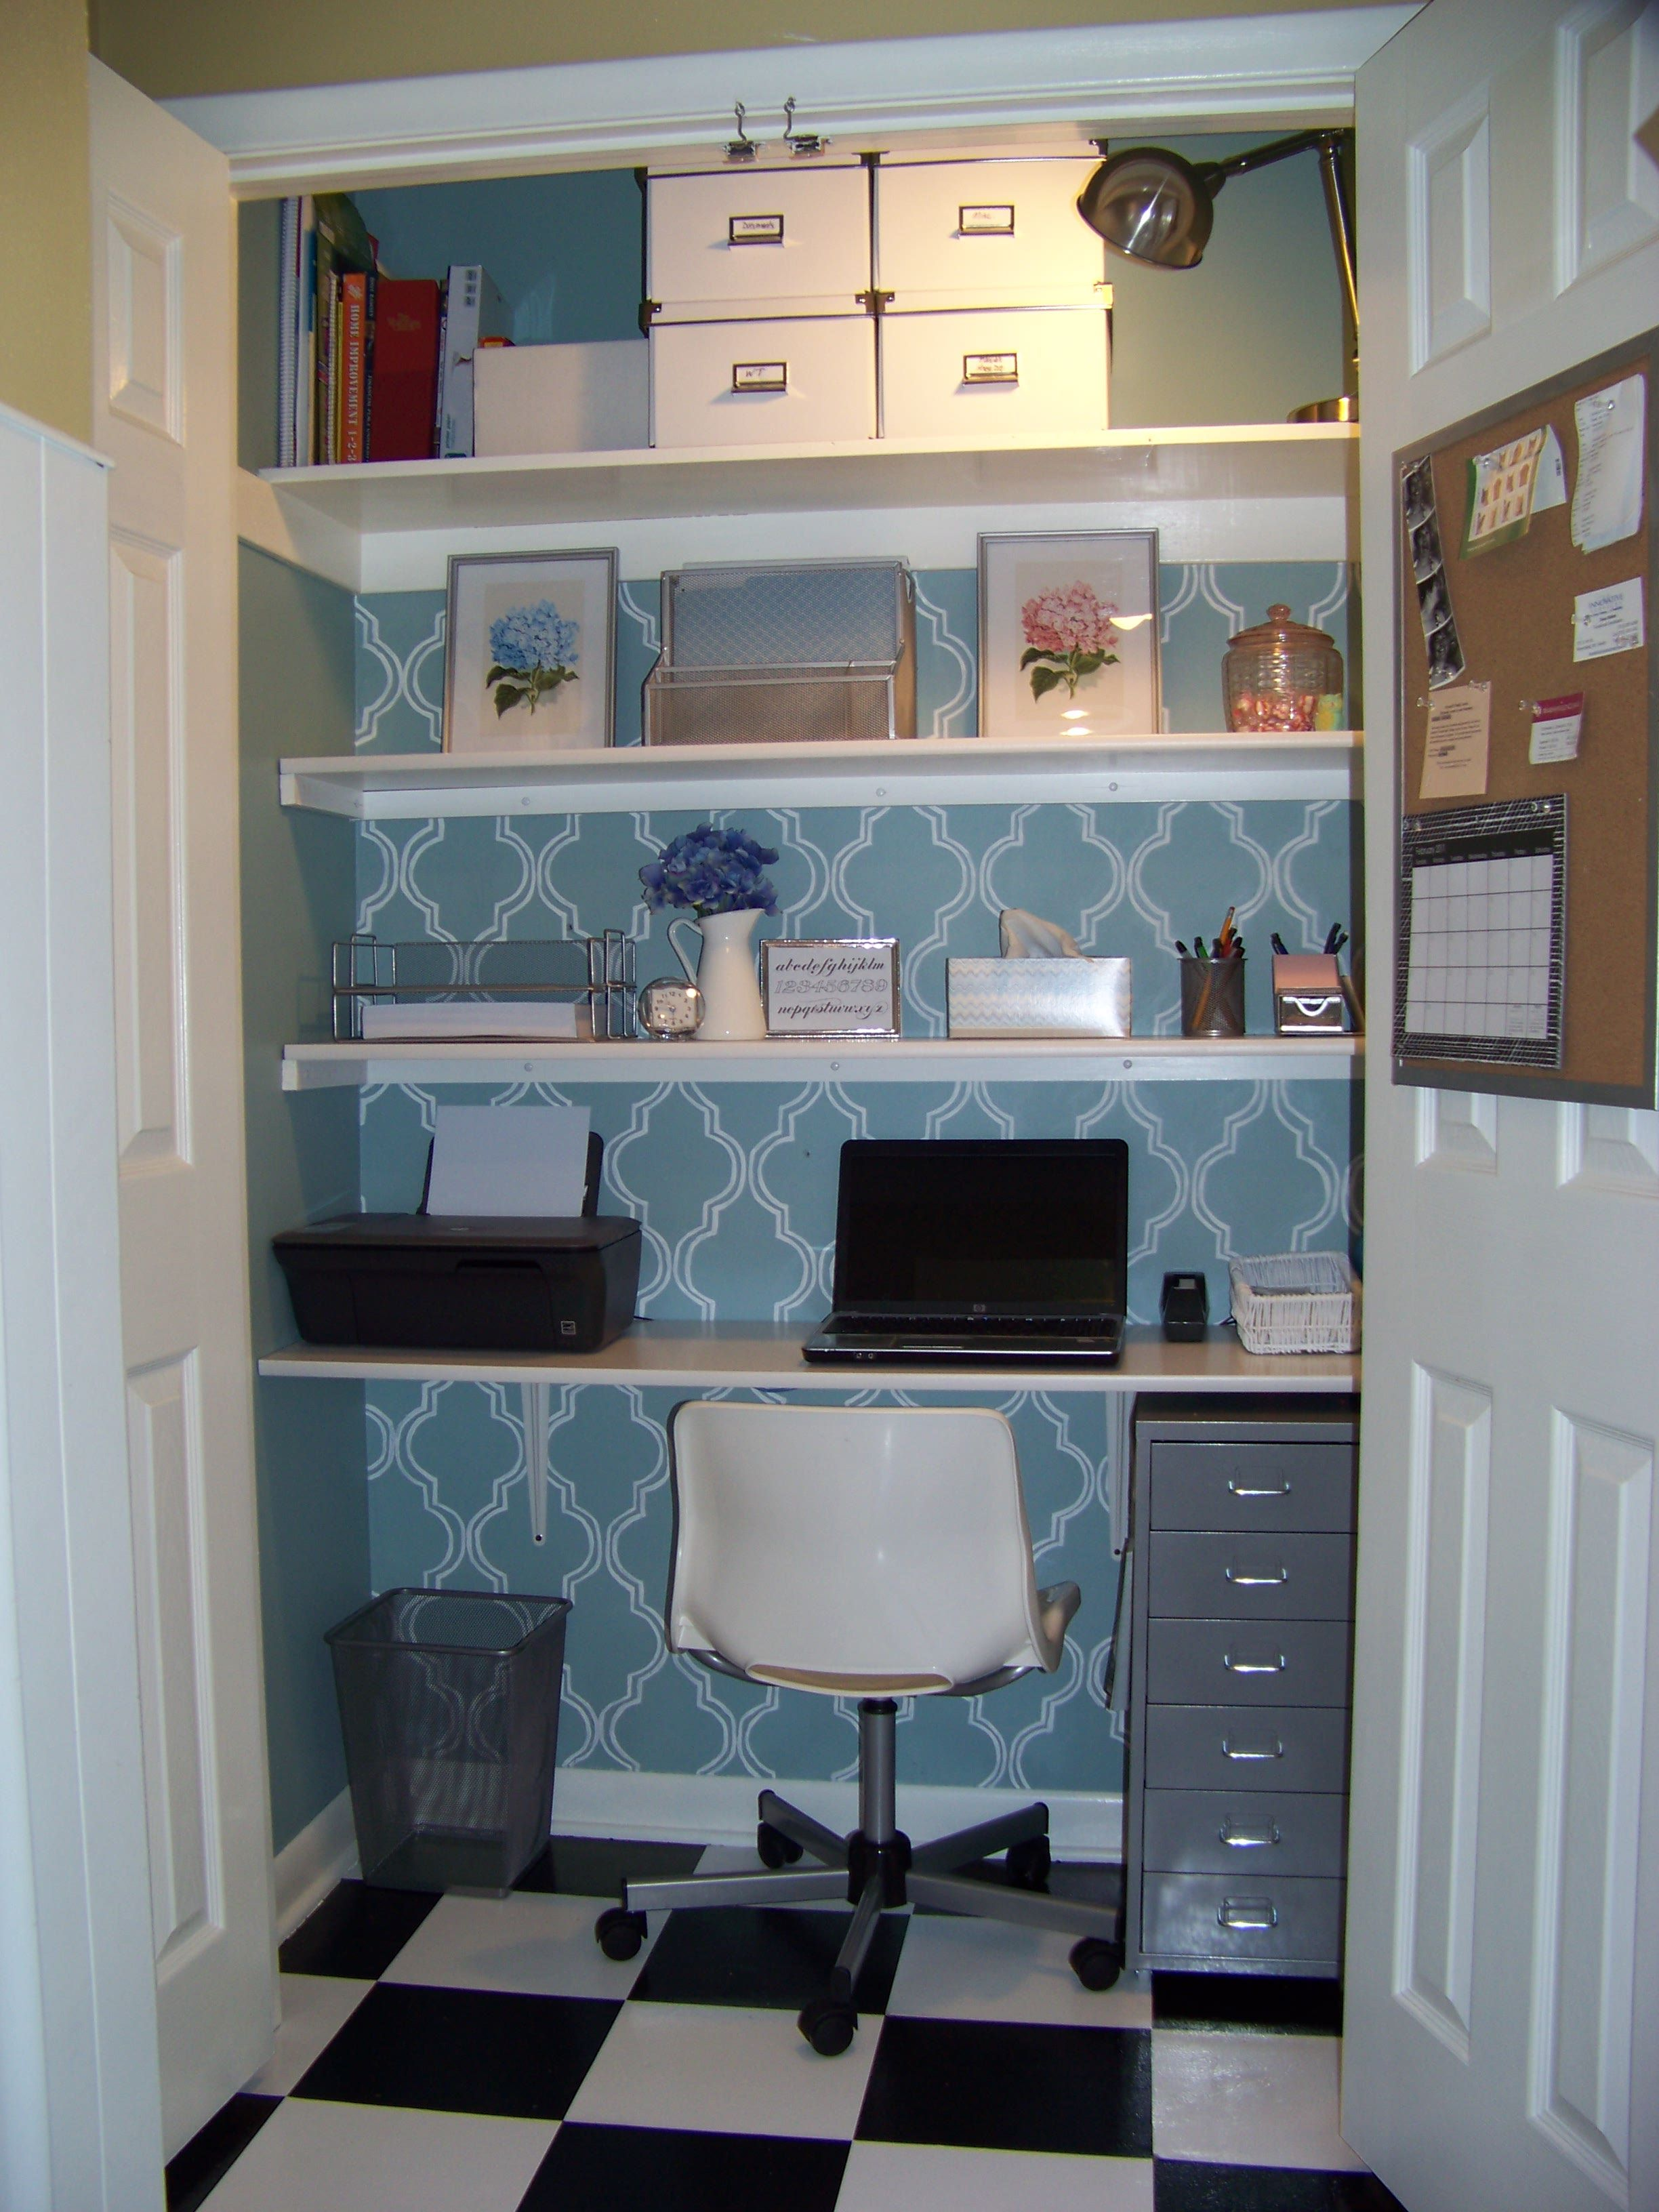 Room Decorating Before And After Makeovers Home Office Design Craft Room Ideas On A Budget Sewing Room Design